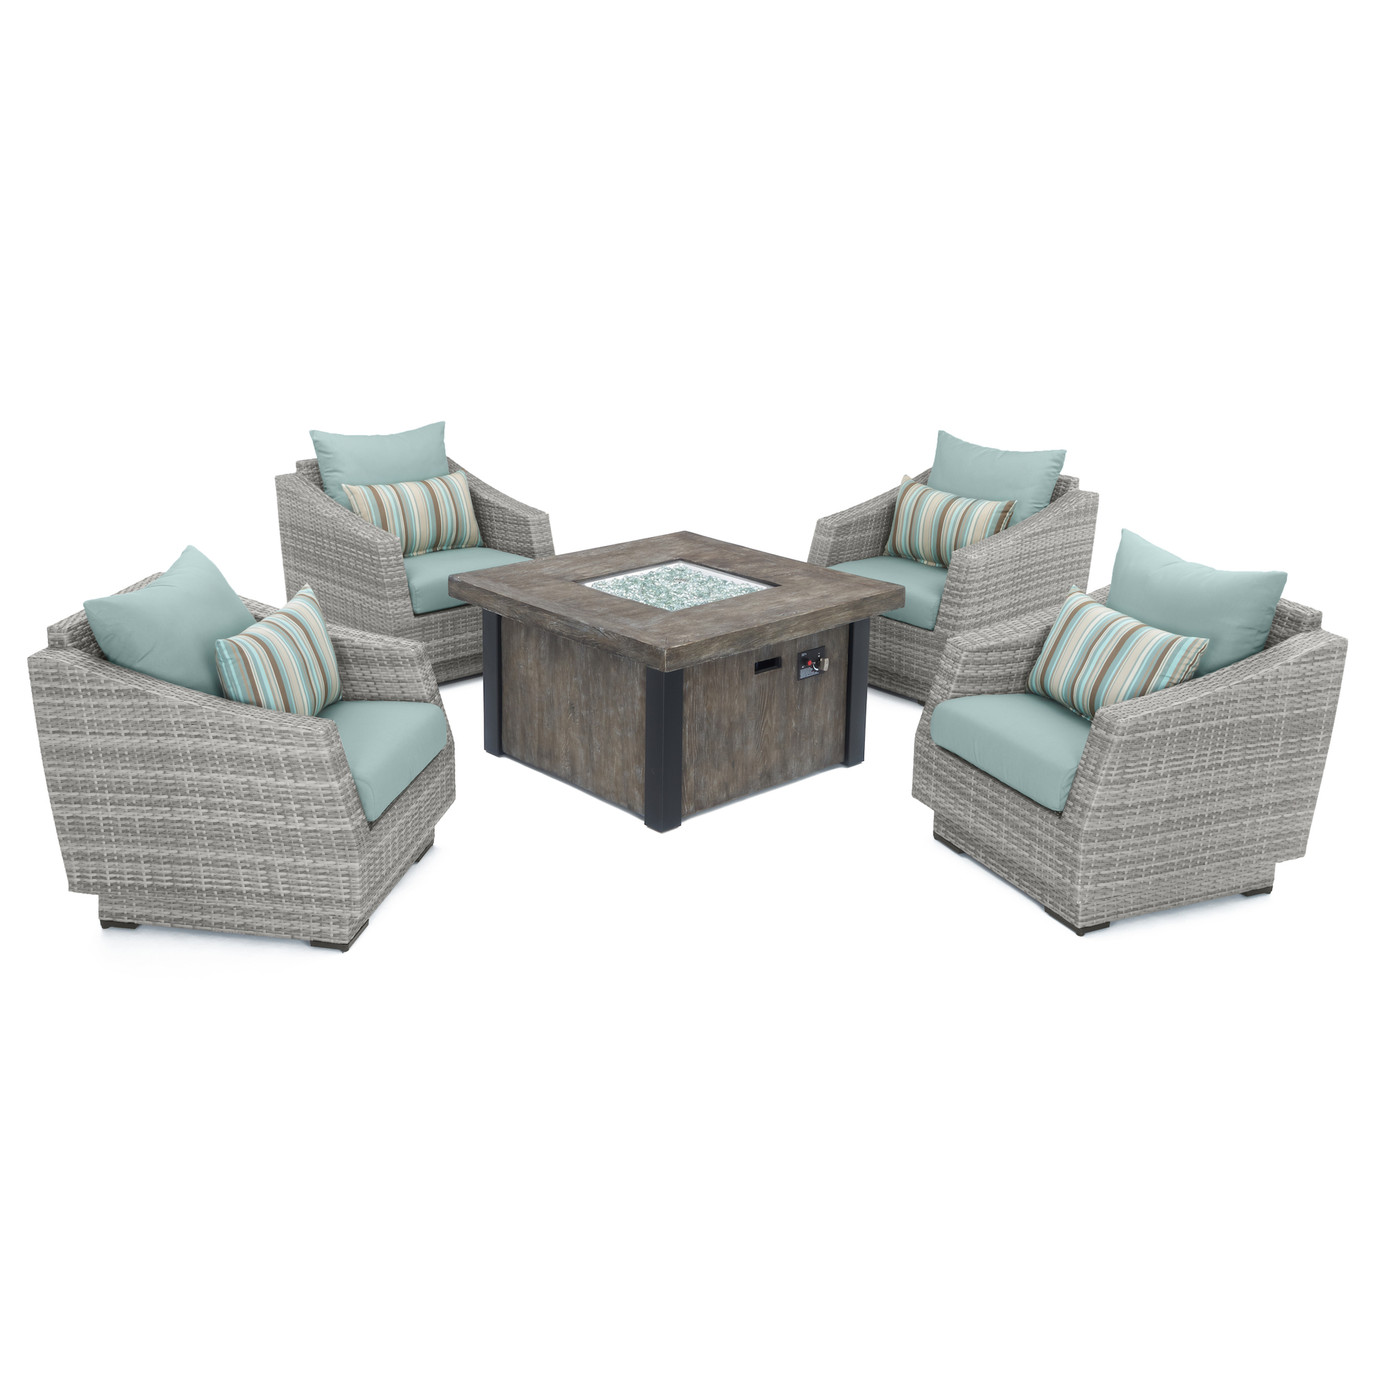 Cannes™ 5 Piece Fire Chat Set - Bliss Blue